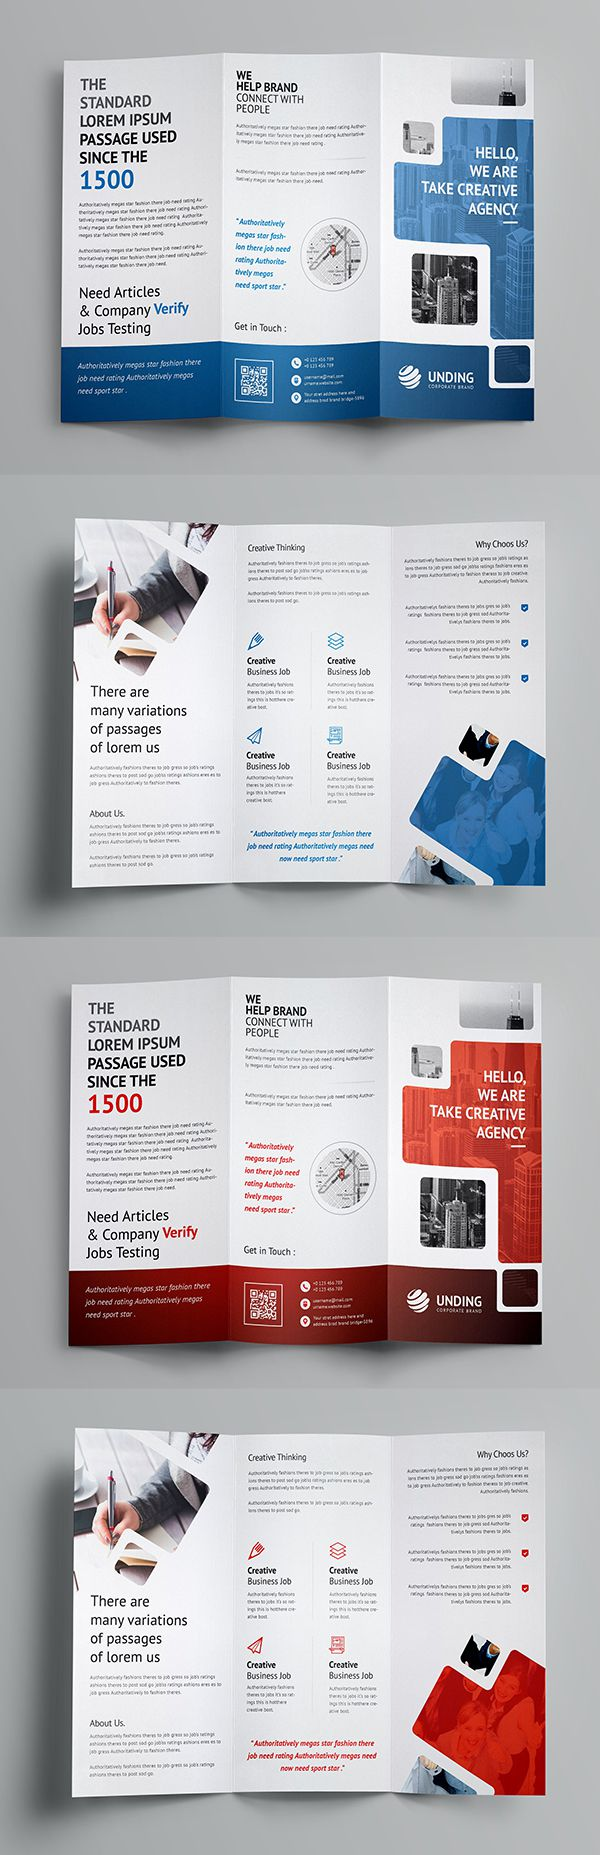 004 Remarkable Three Fold Brochure Template Word Free High Def  3 DownloadFull